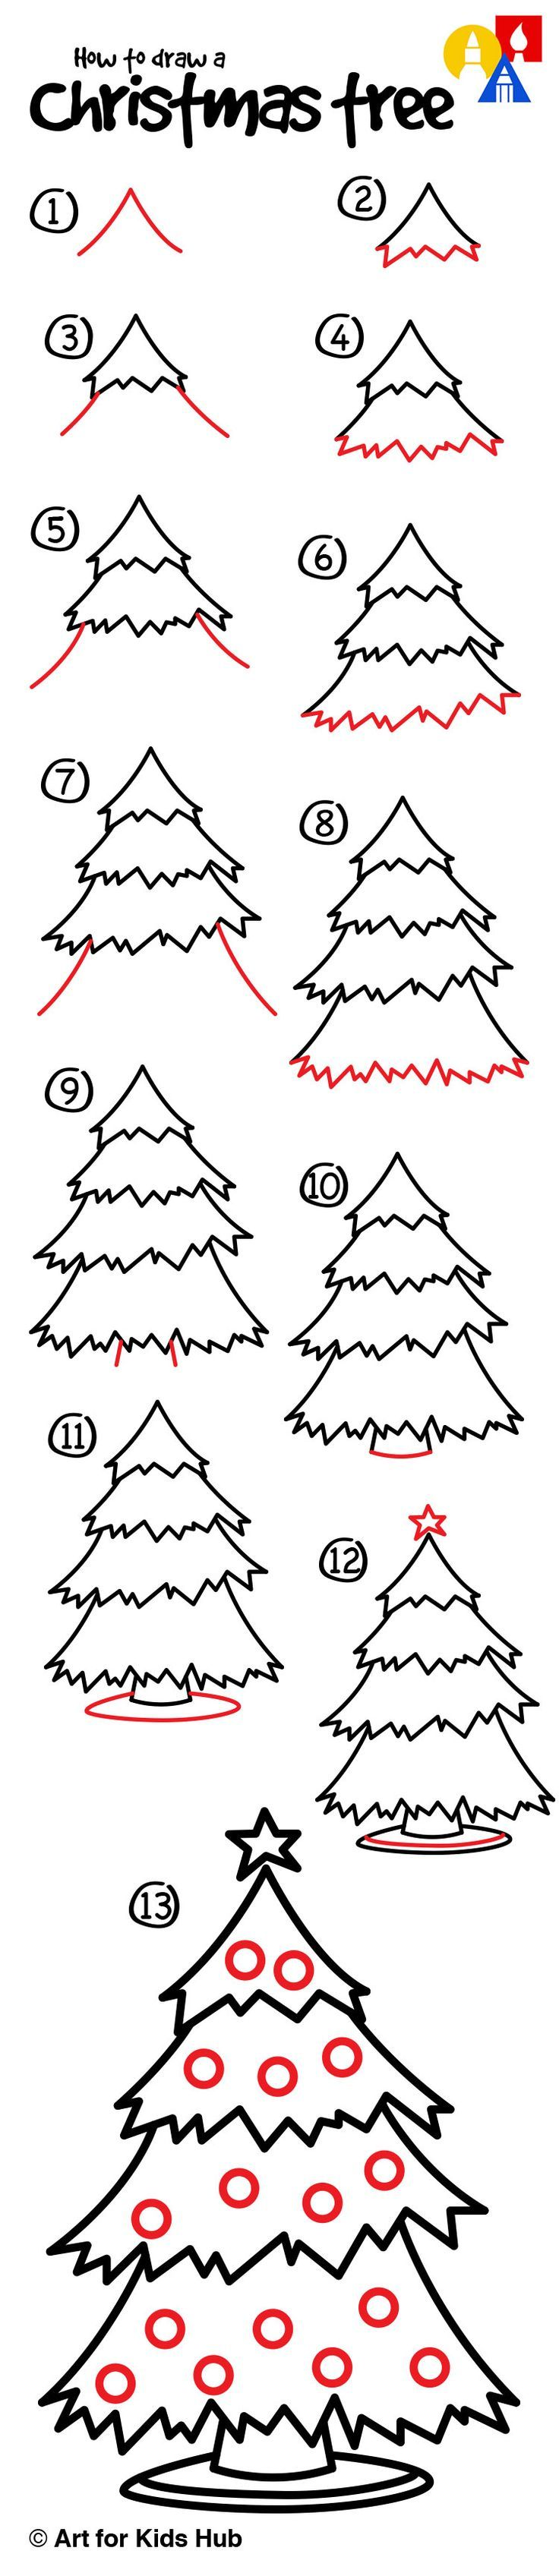 How to draw a Christmas tree!: